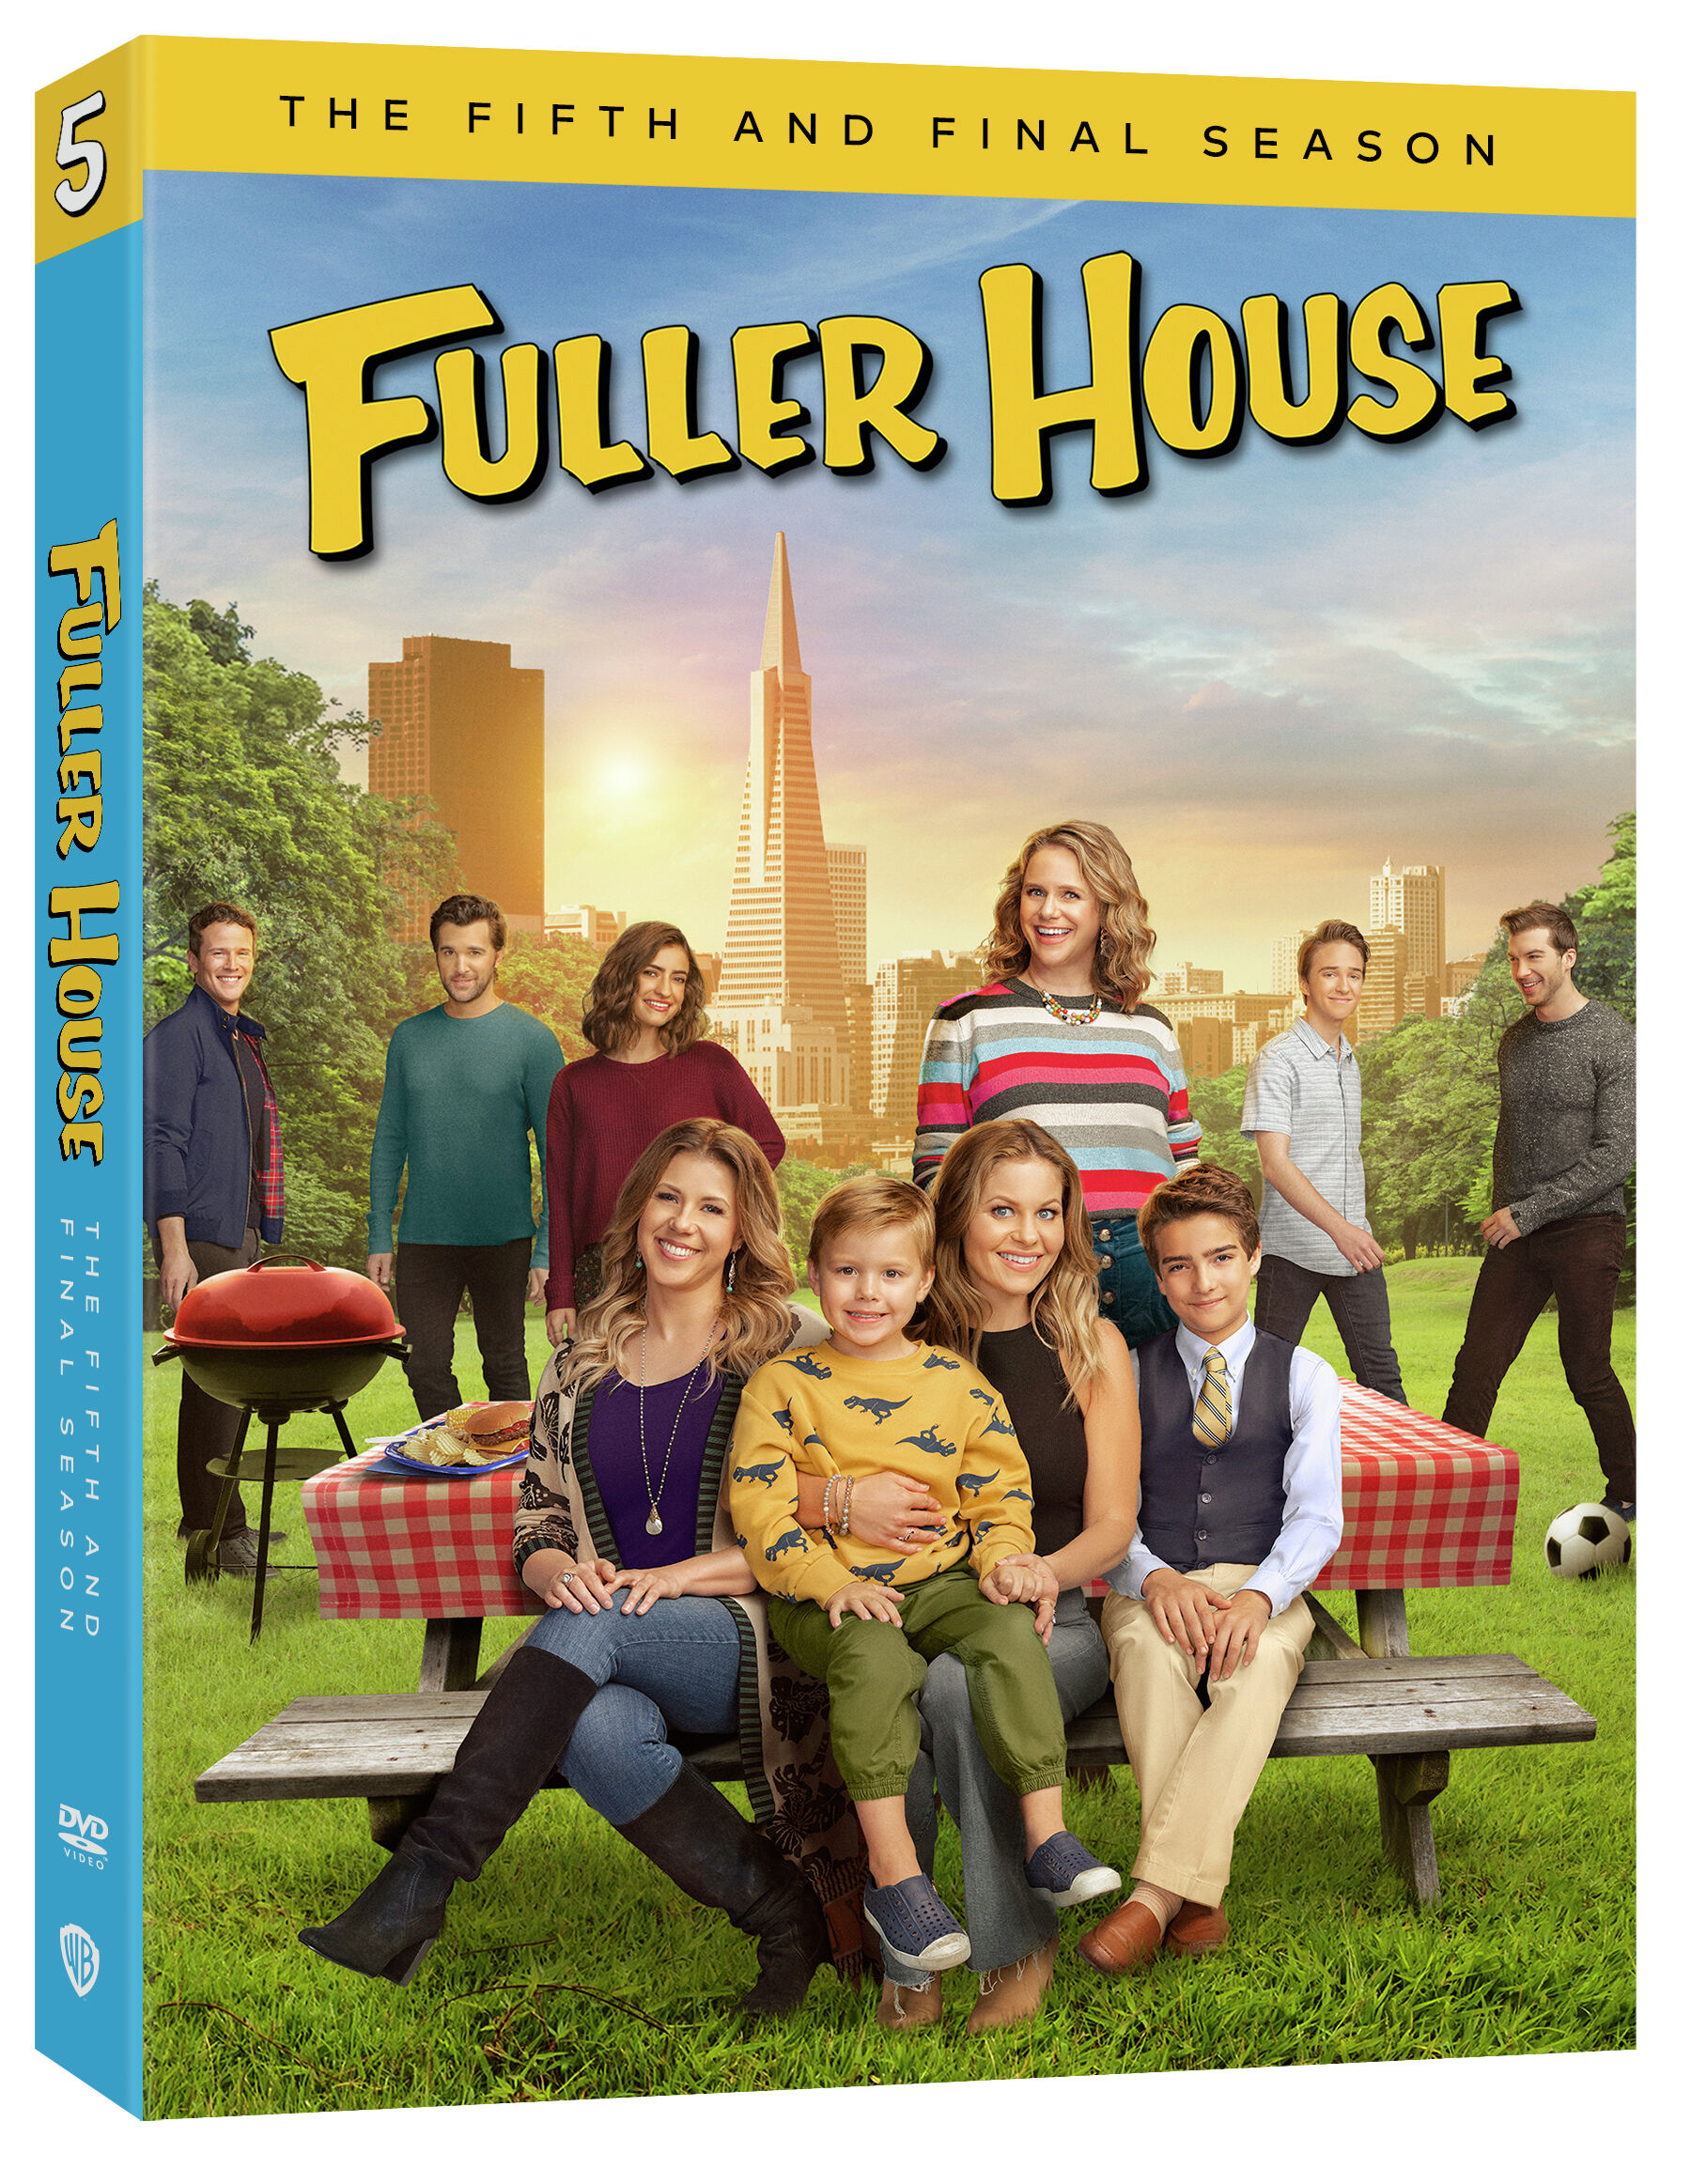 """Fuller House: The Fifth and Final Season"" - graphic image"